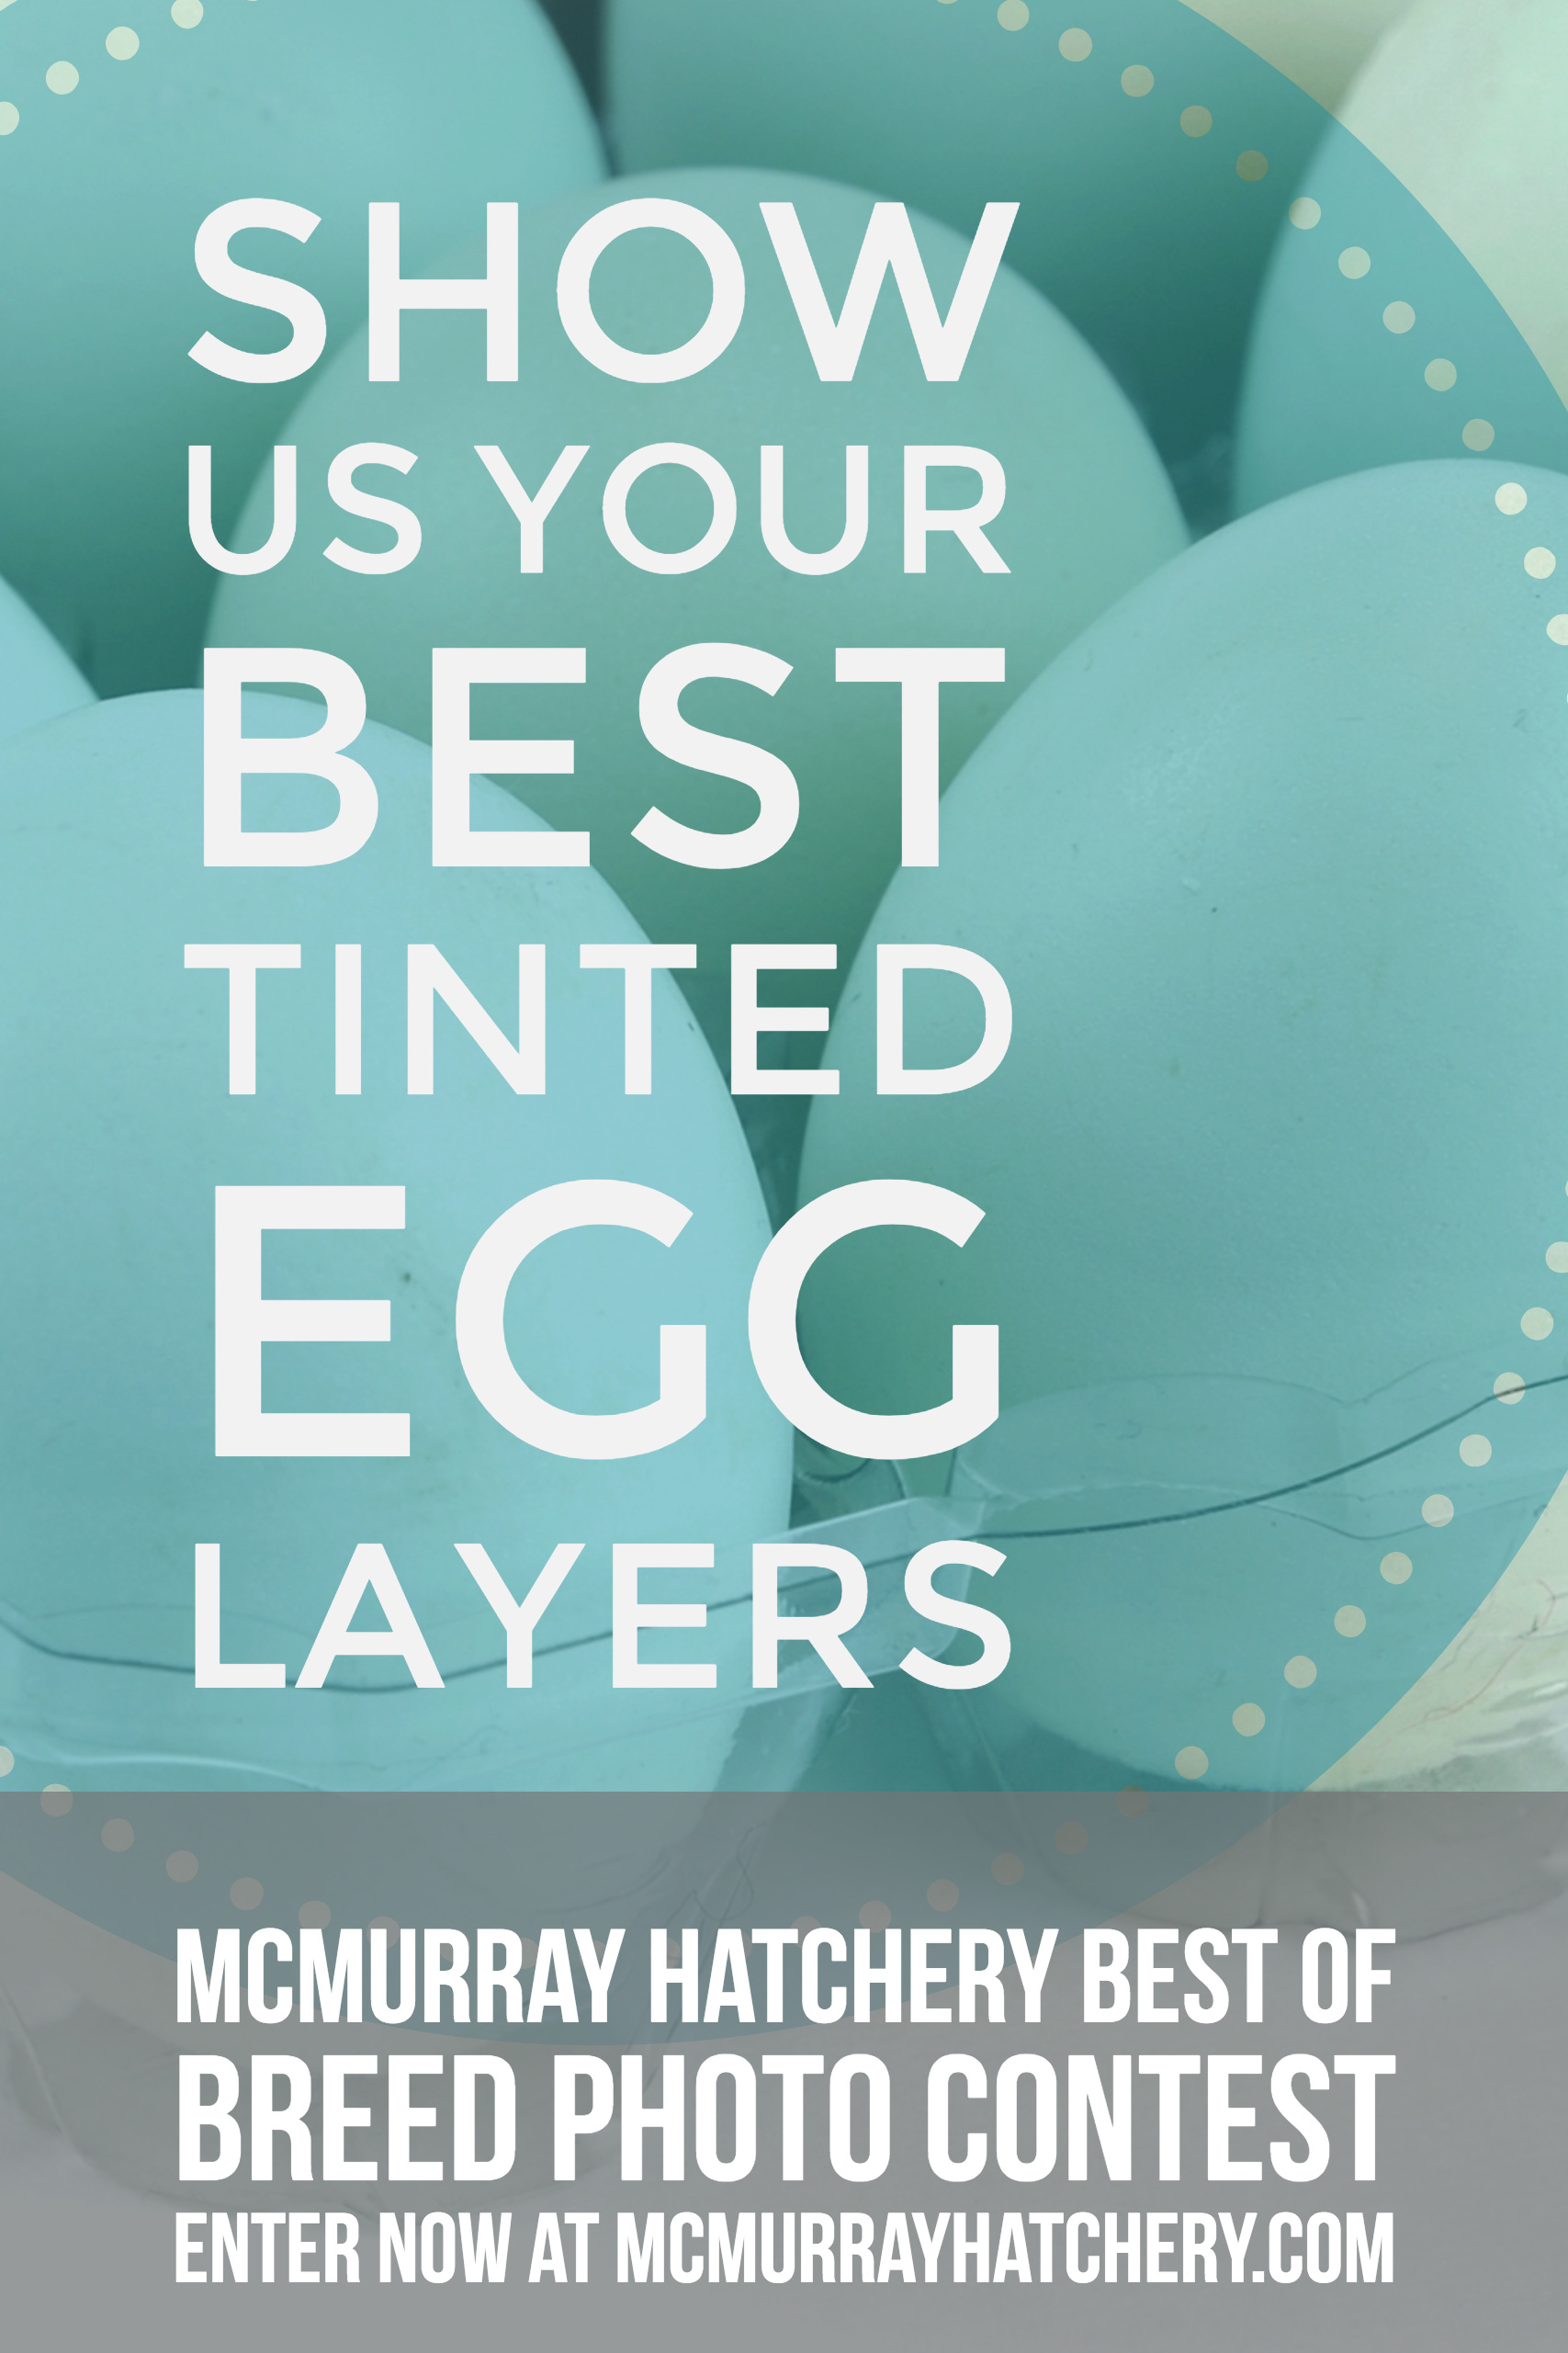 2018 Best of Breed Photo Contest: Tinted Egg Layers